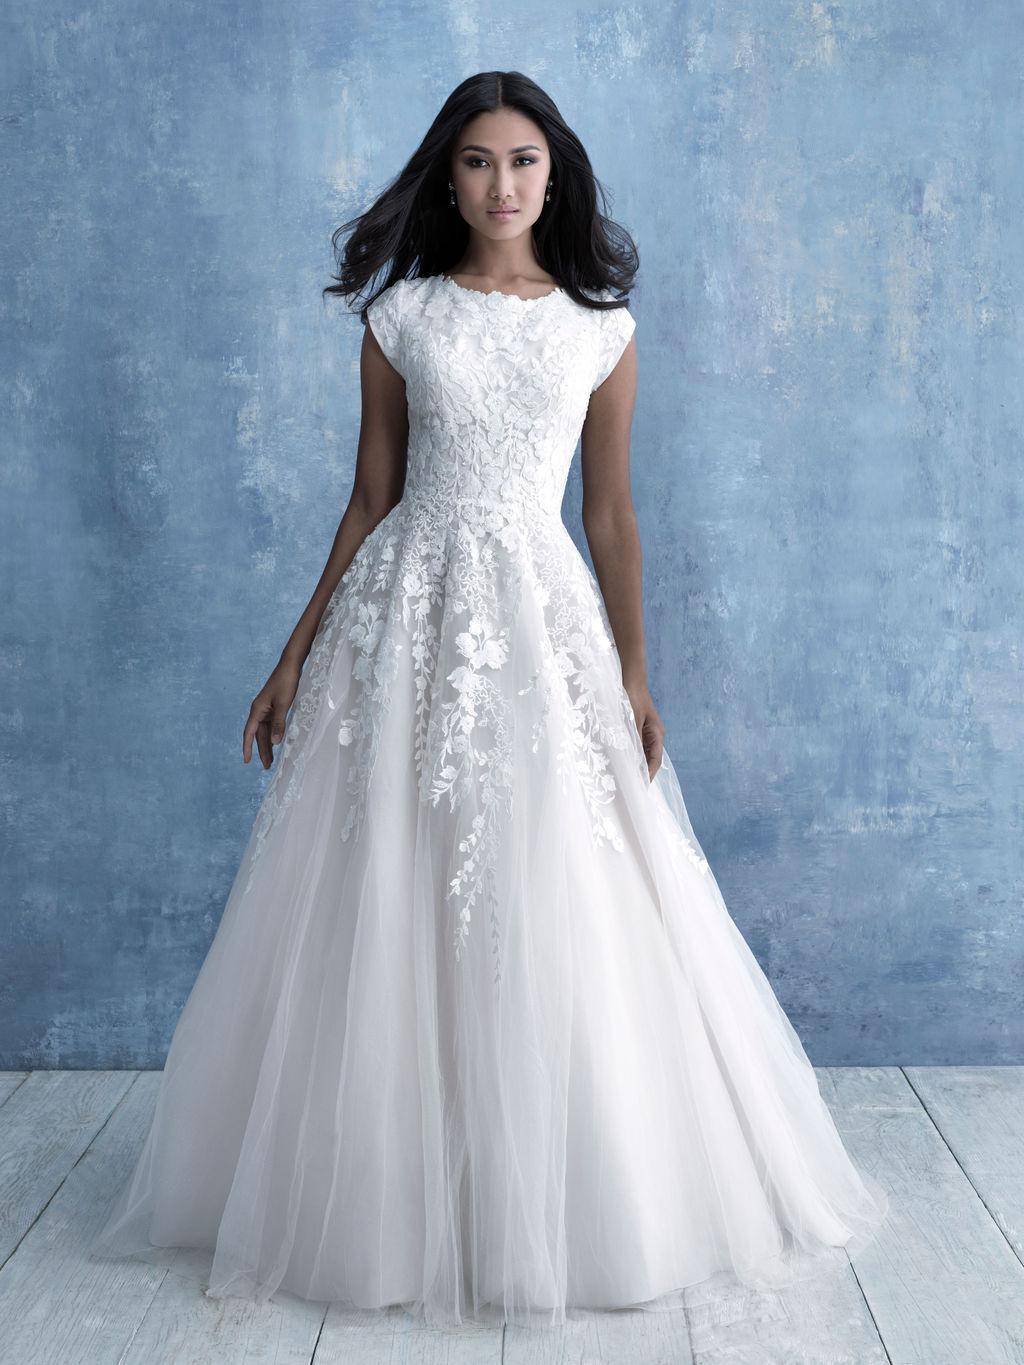 Allure M635 modest wedding dress ball gown with sleeves lace ballgown full tulle LDS bridal for plus size